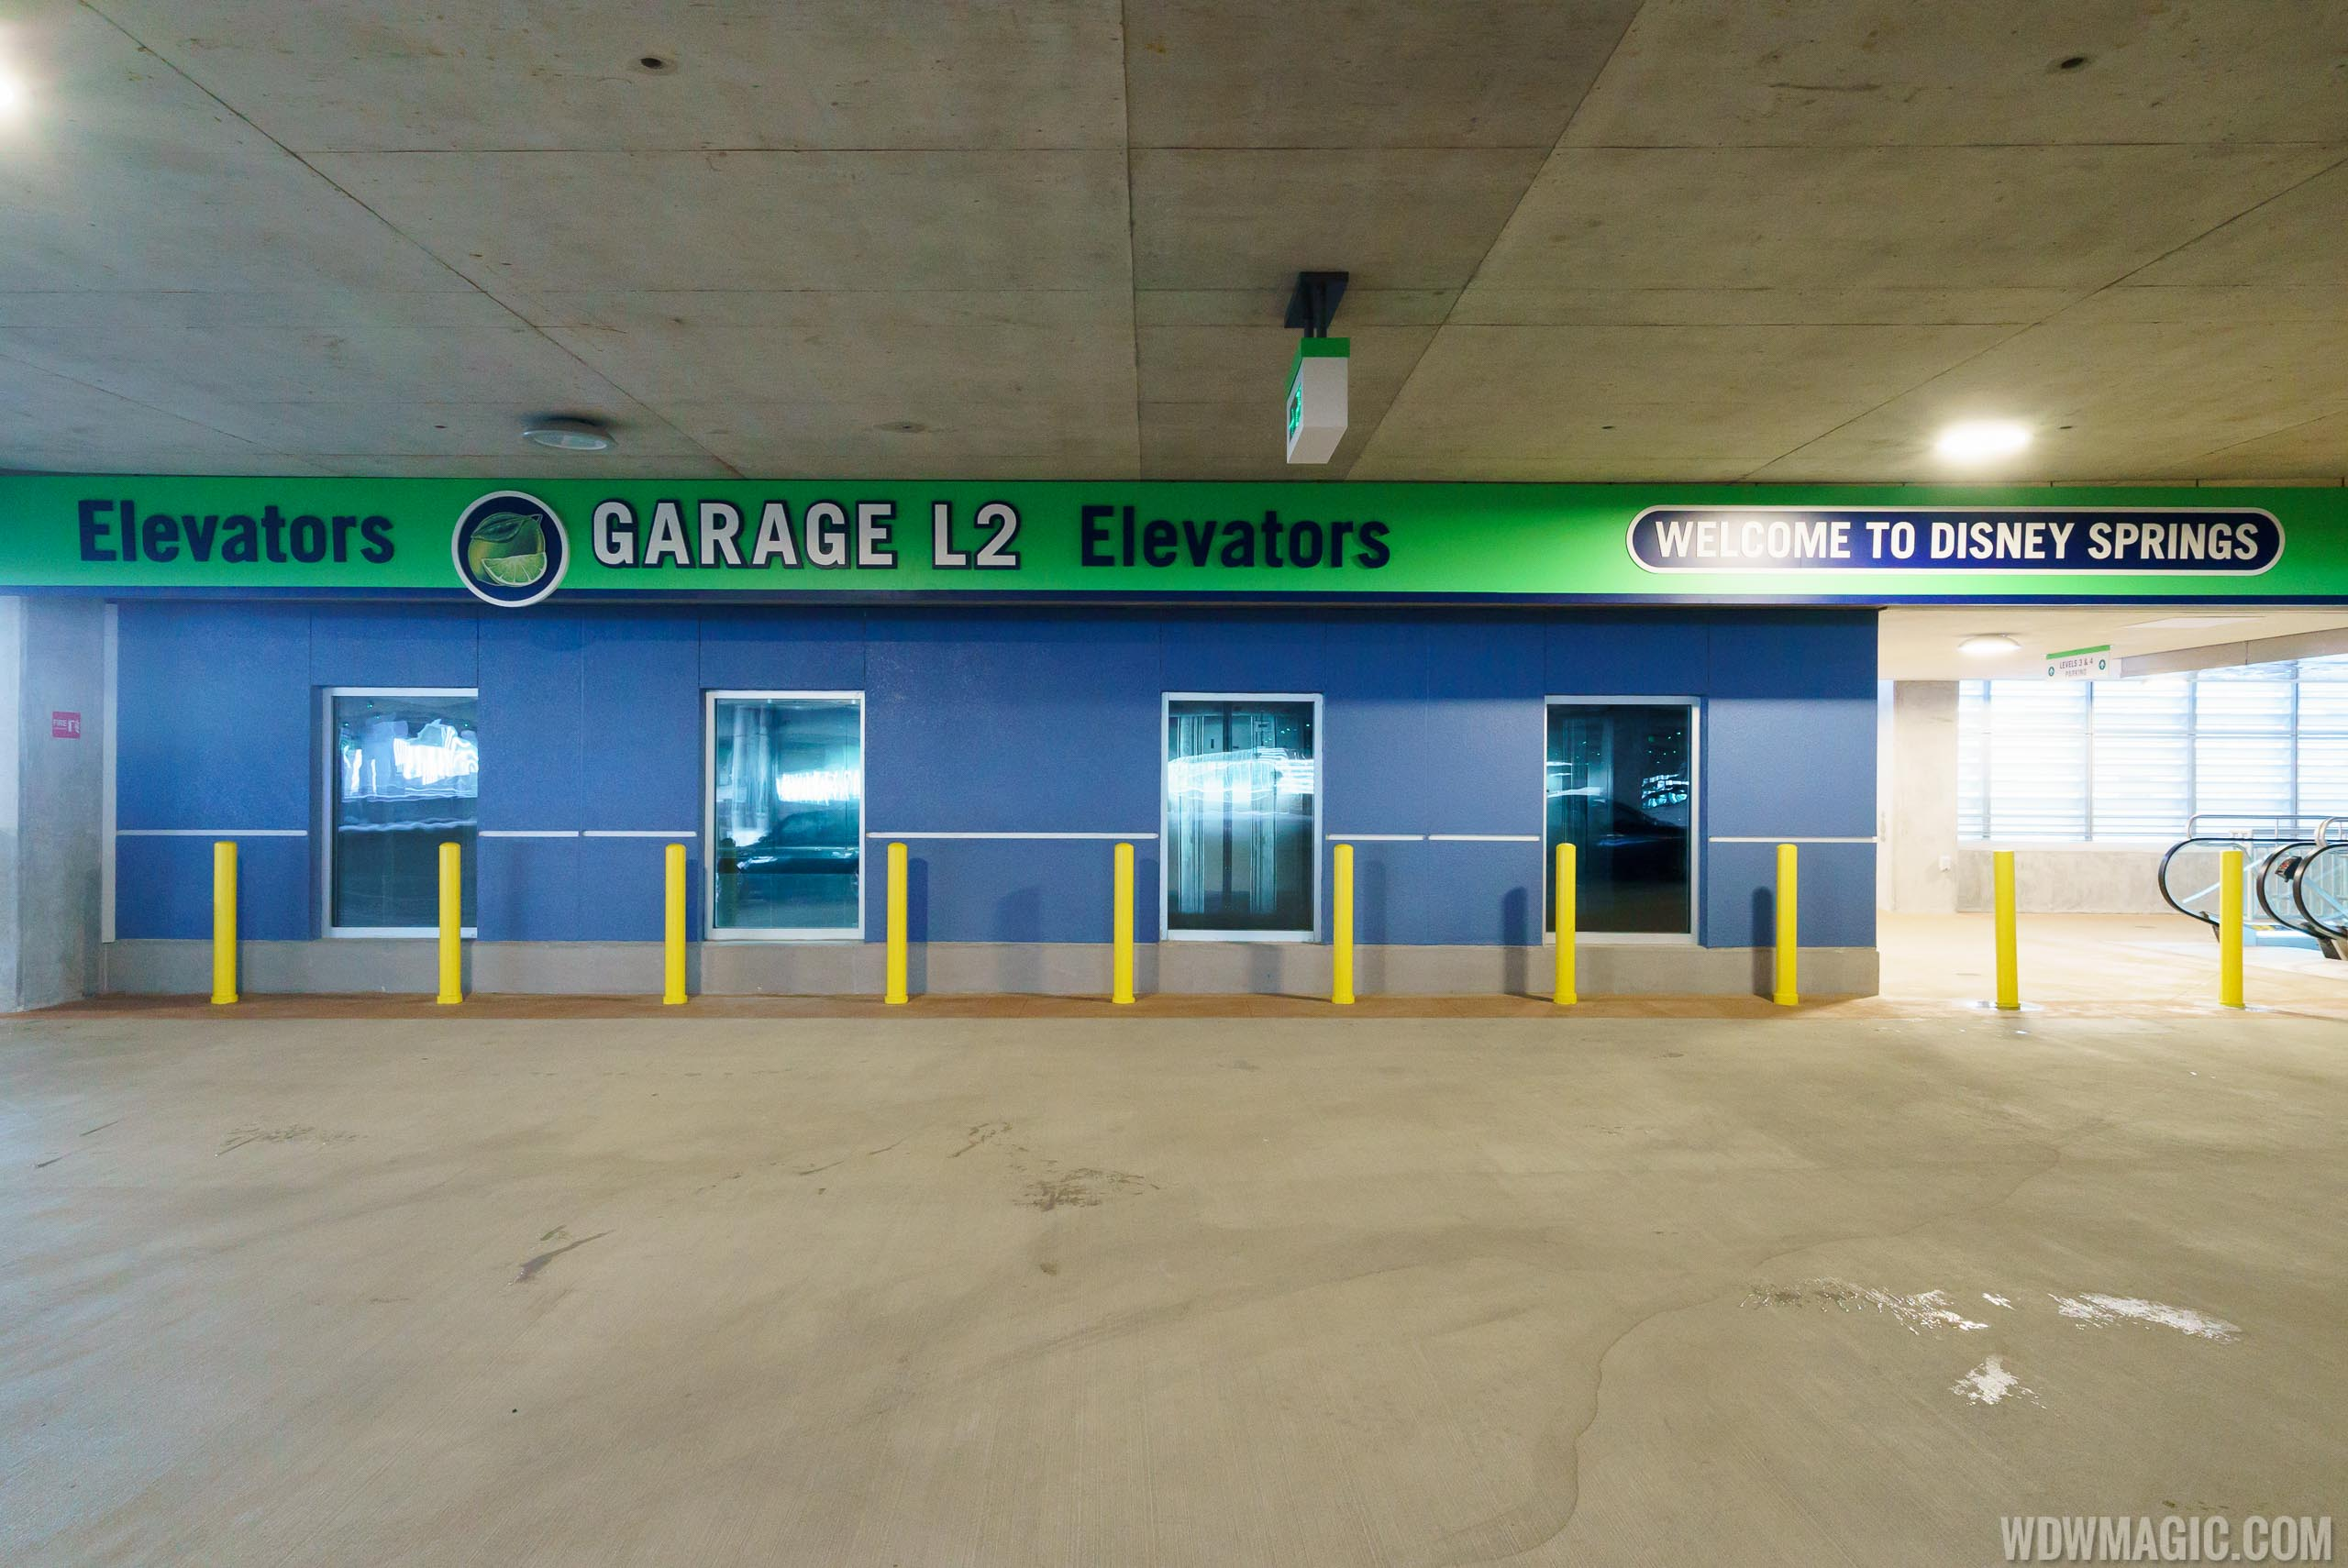 Lime Garage elevators